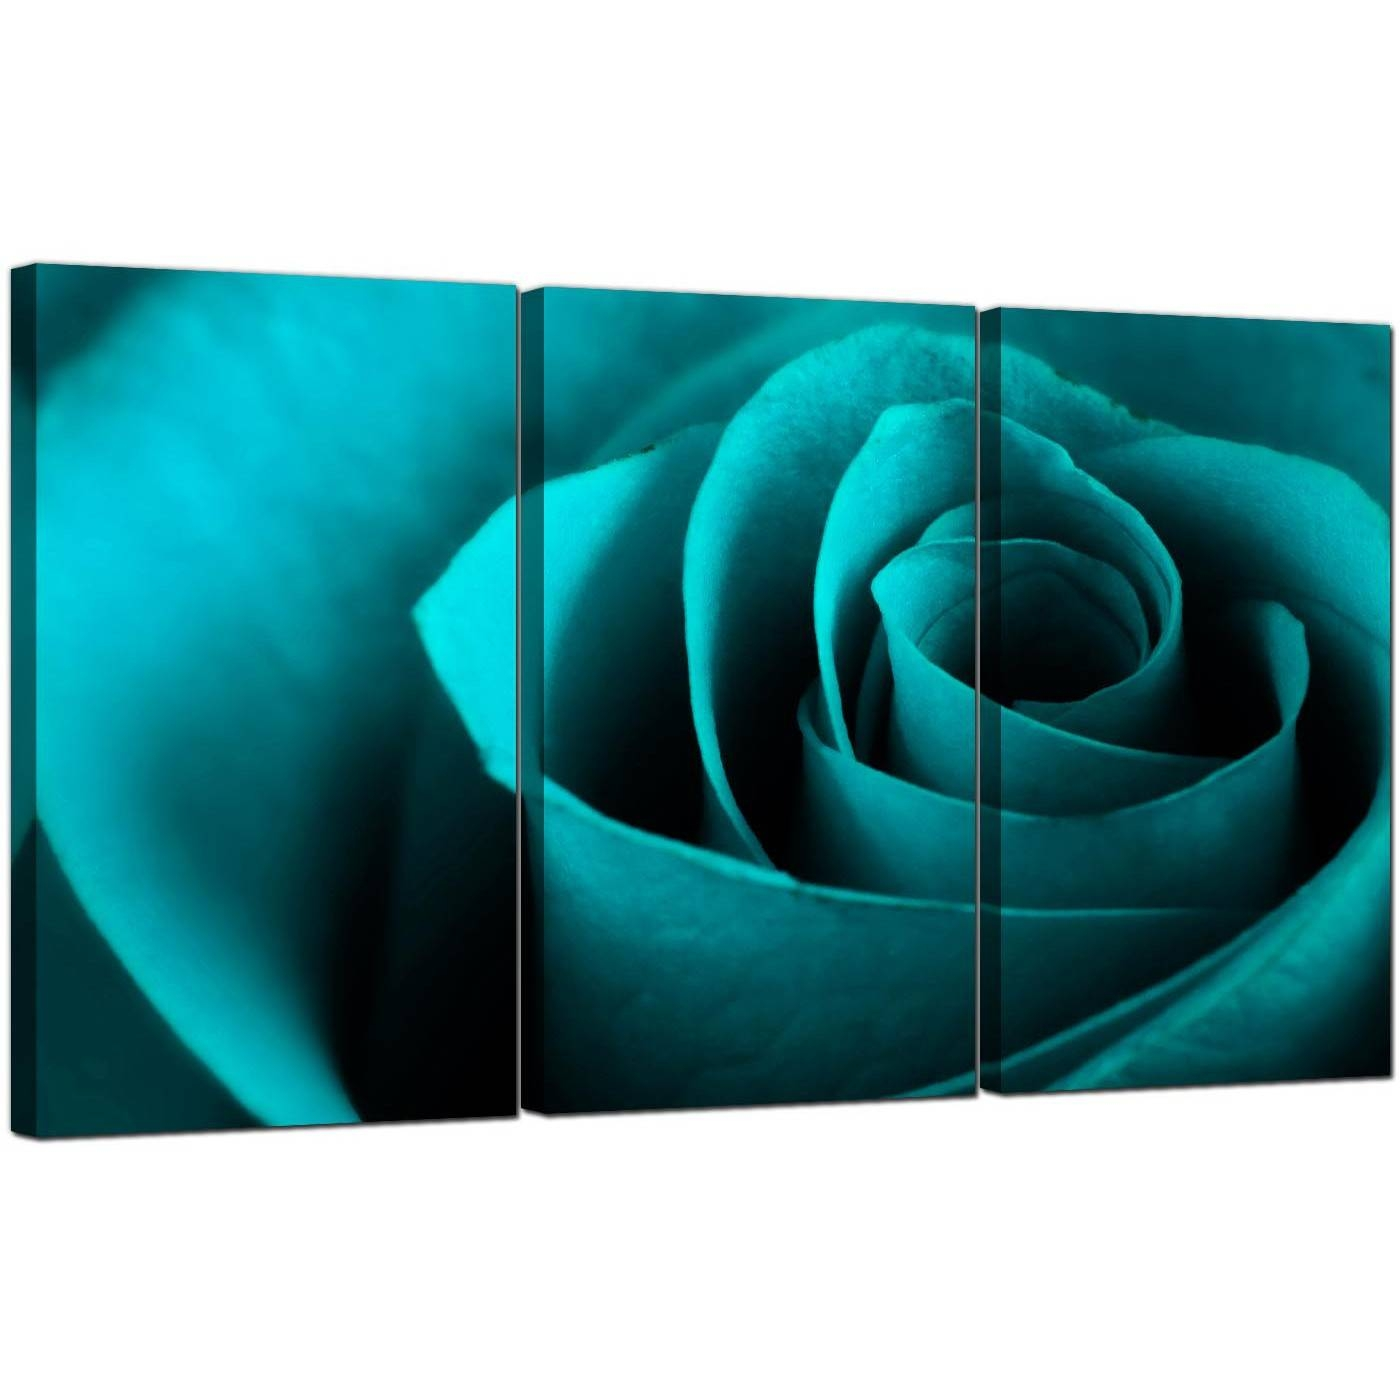 Rose Canvas Art Set Of 3 For Your Living Room With Best And Newest Rose Canvas Wall Art (View 16 of 20)